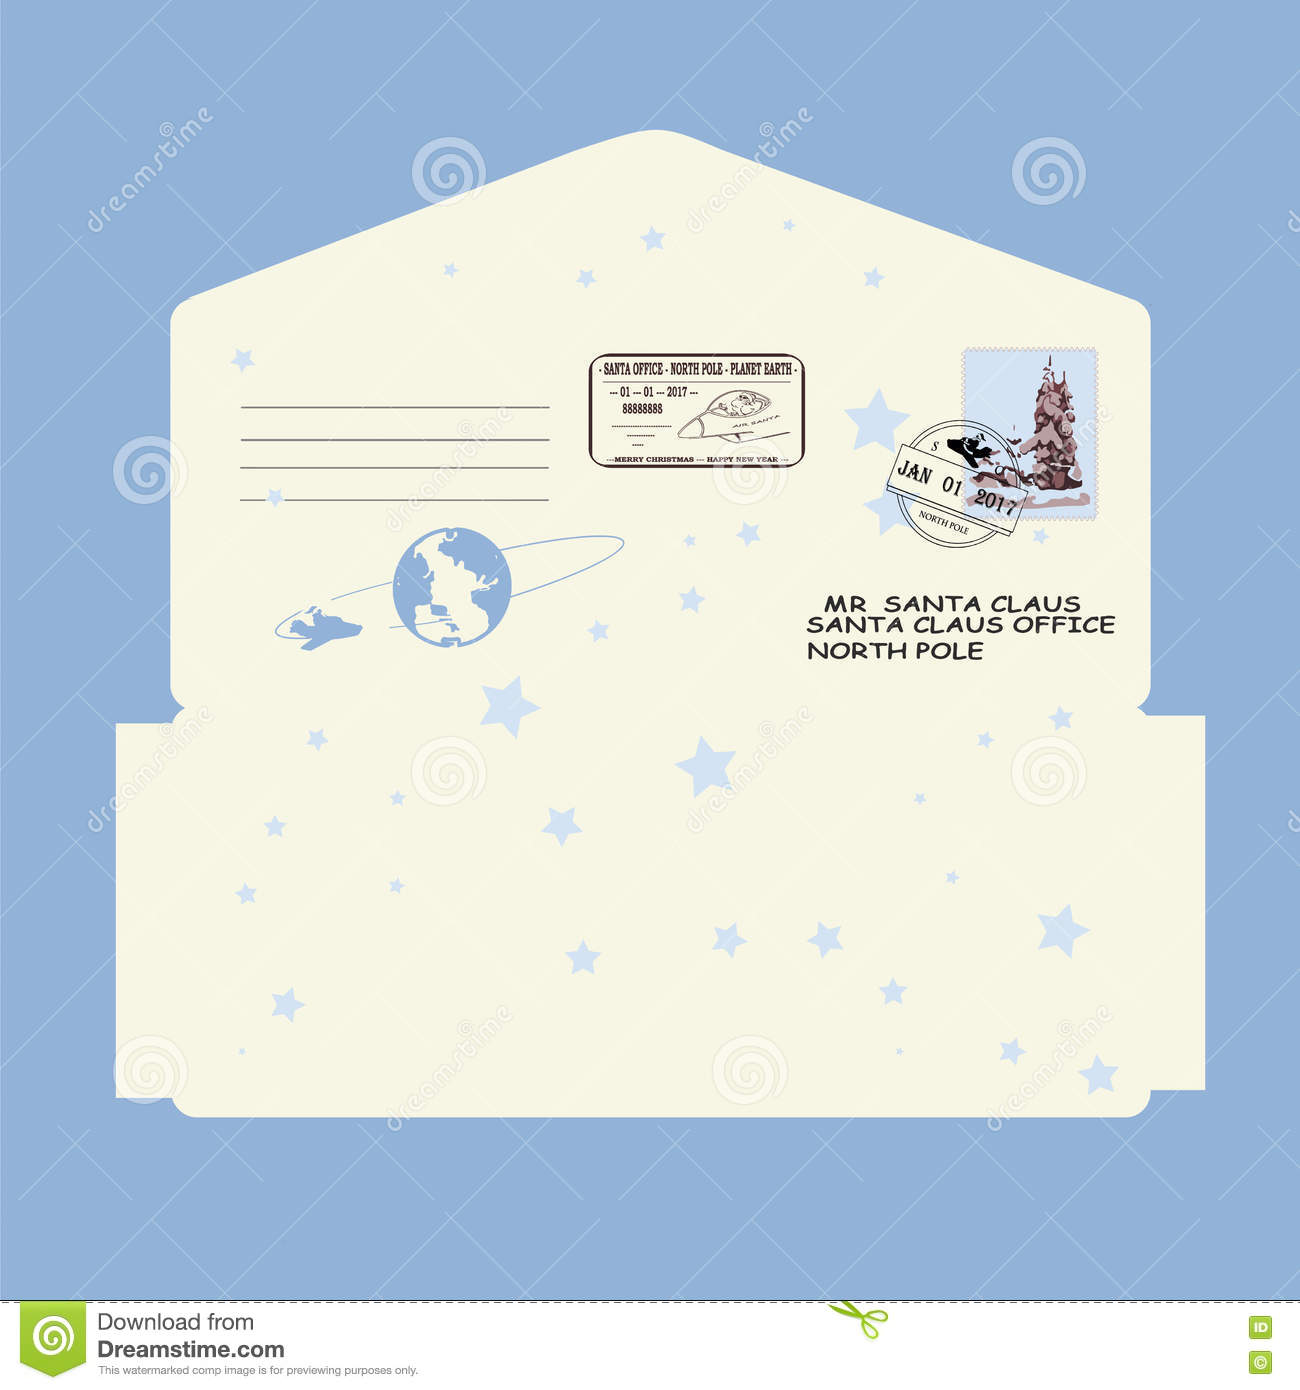 Christmas new year letter to santa claus template envelope christmas new year letter to santa claus template envelope stamp pronofoot35fo Image collections